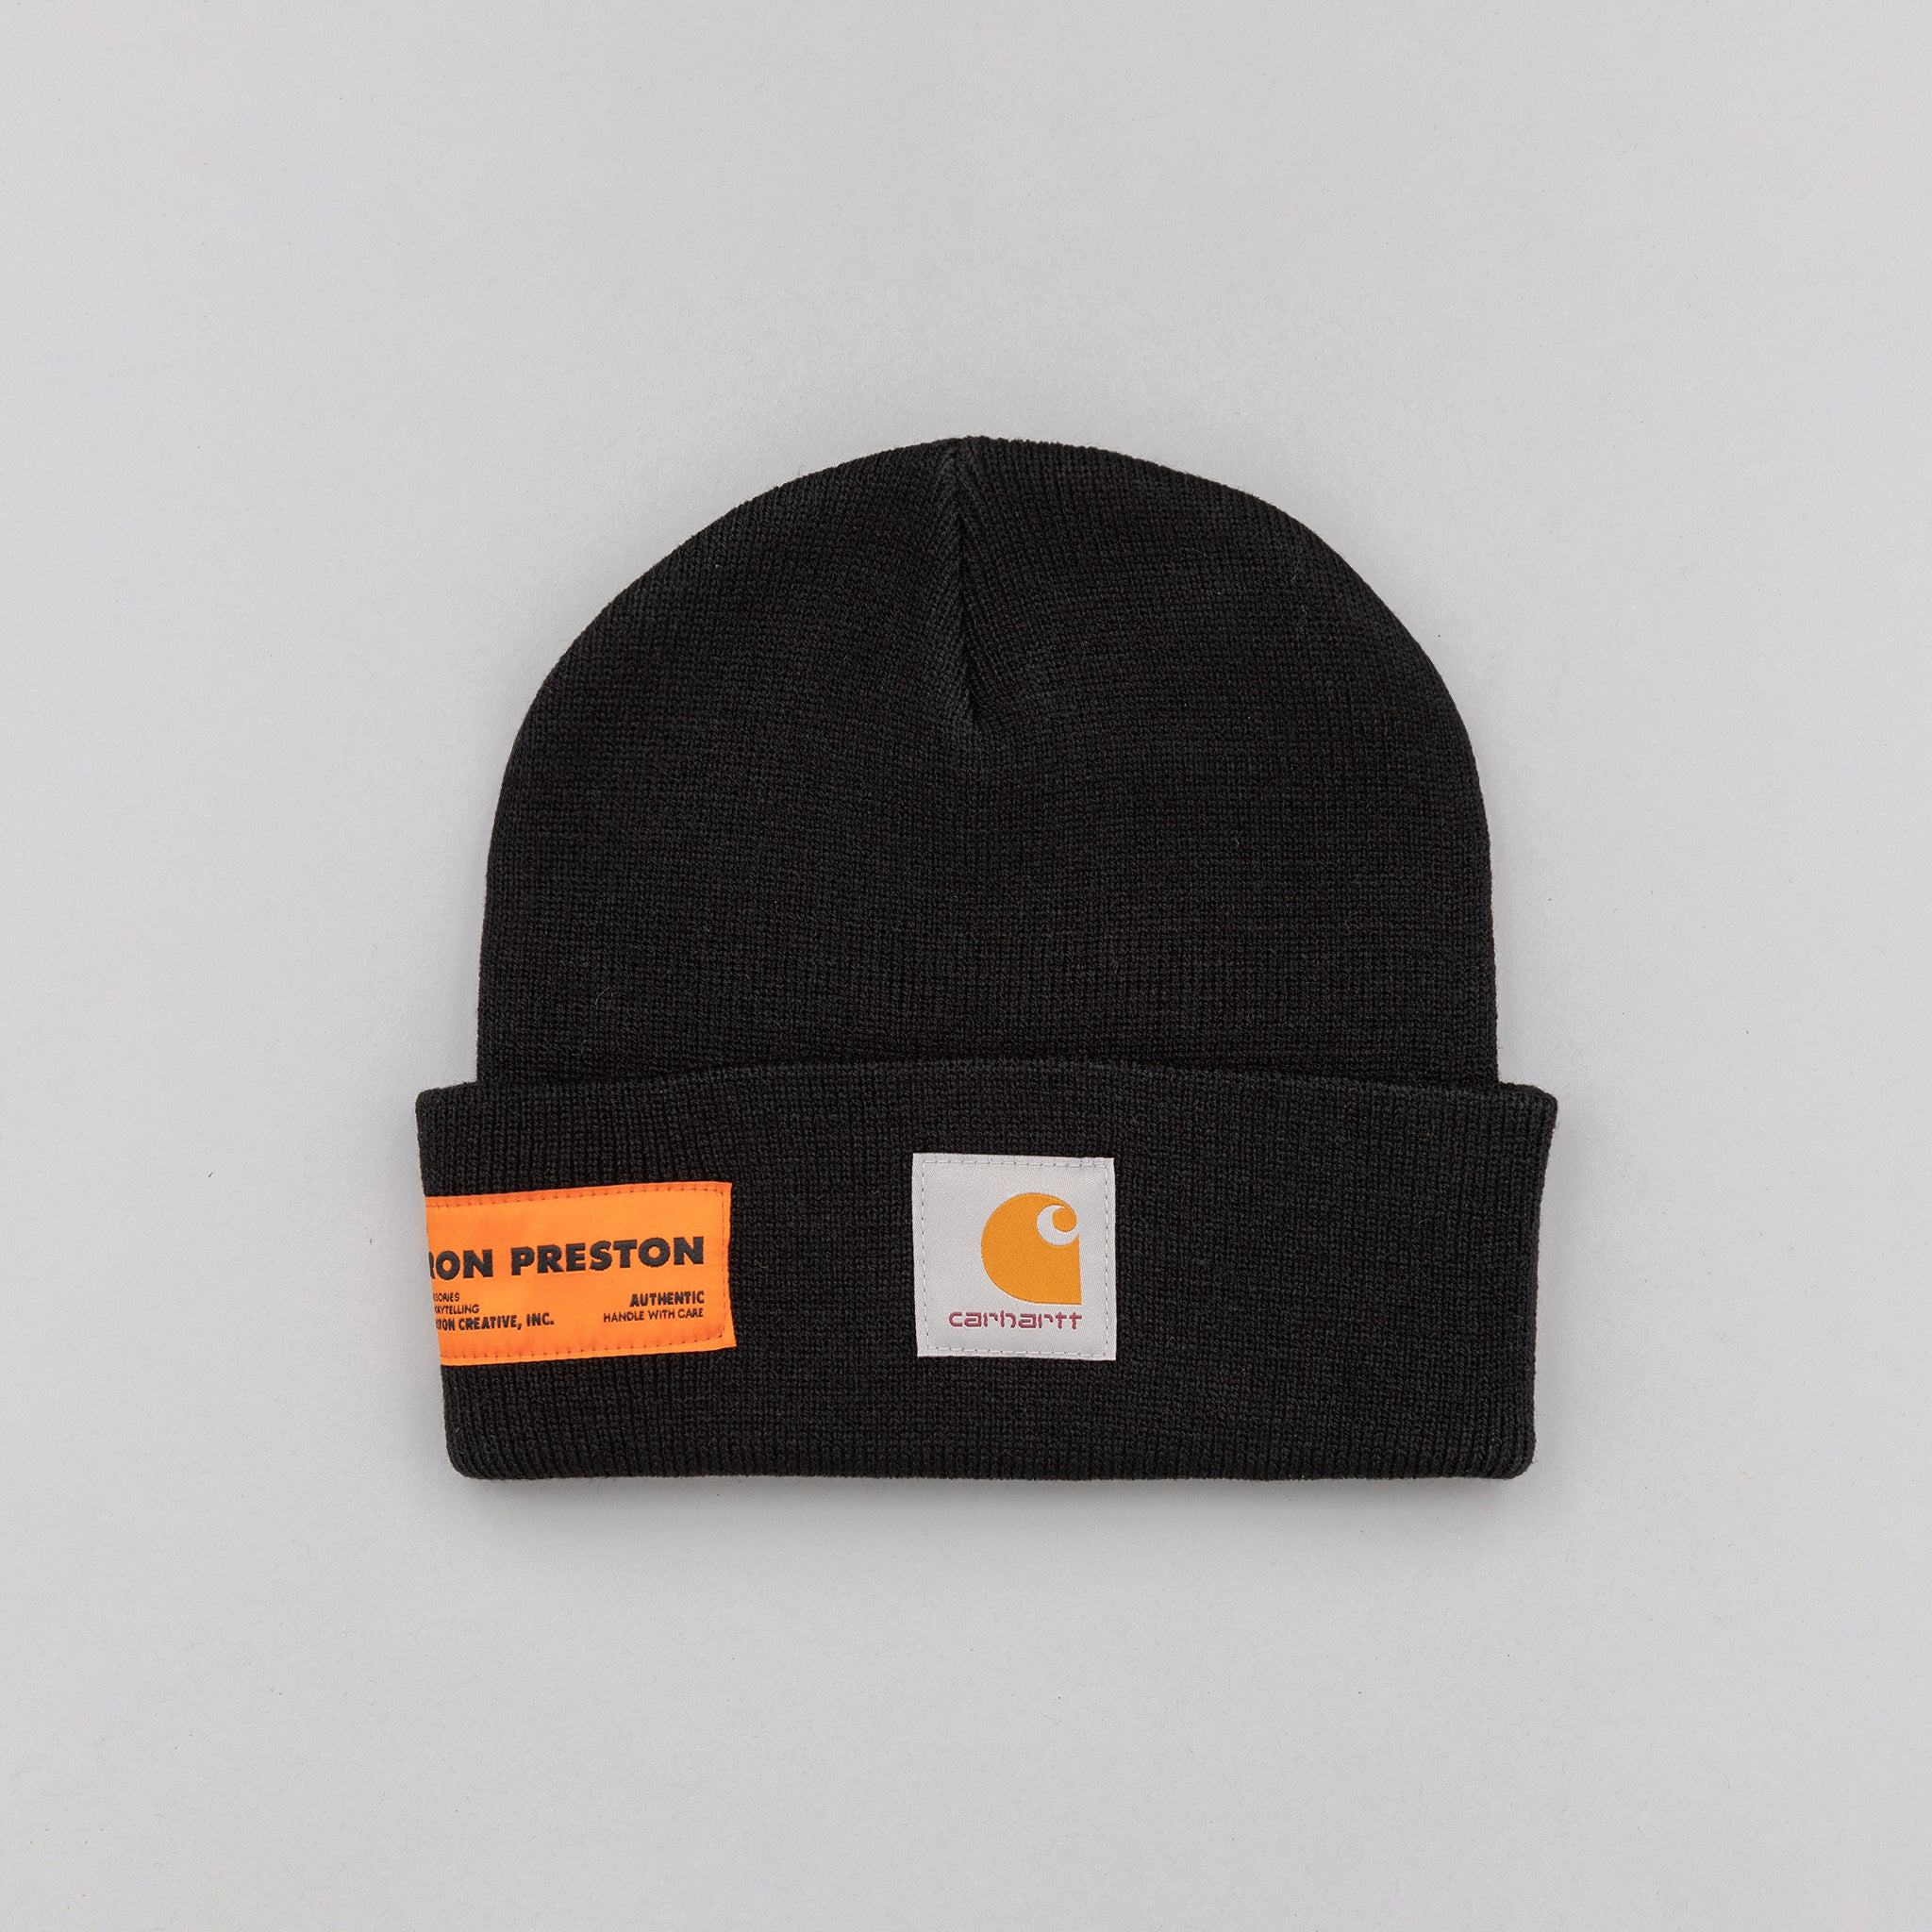 x Carhartt Beanie in Black Crystal 1dca36cda58